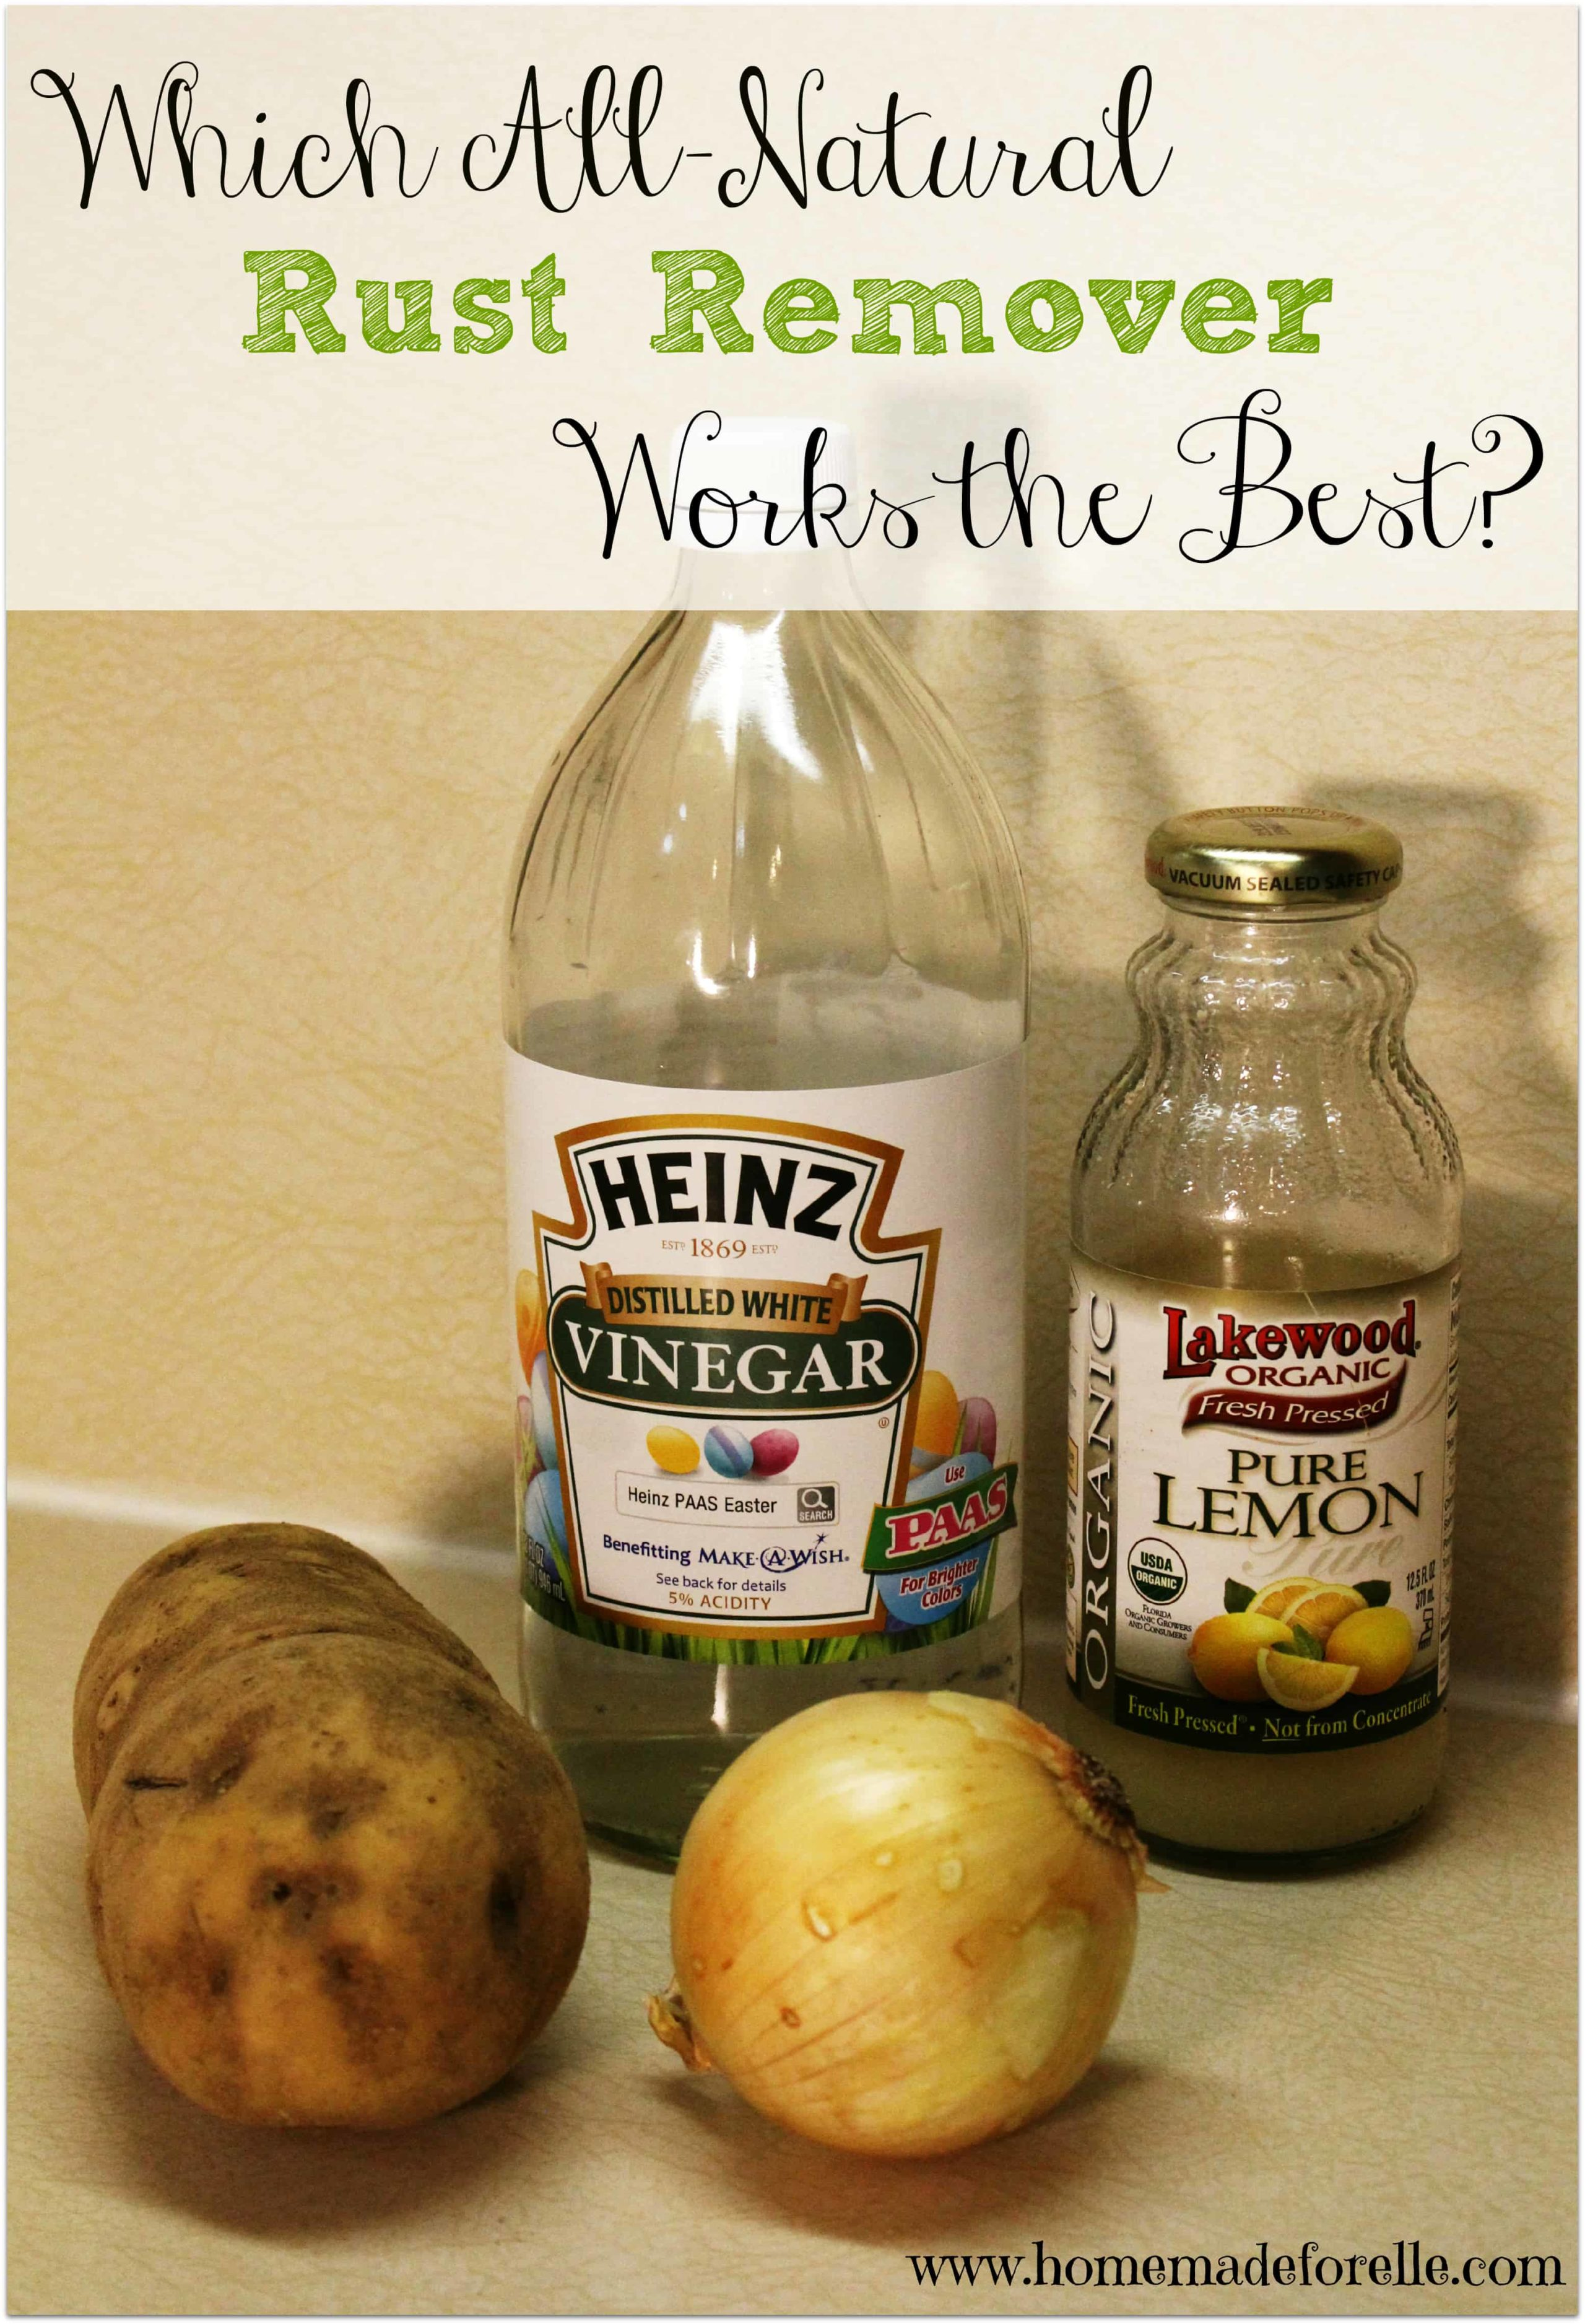 Which All Natural Rust Remover Works The Best?